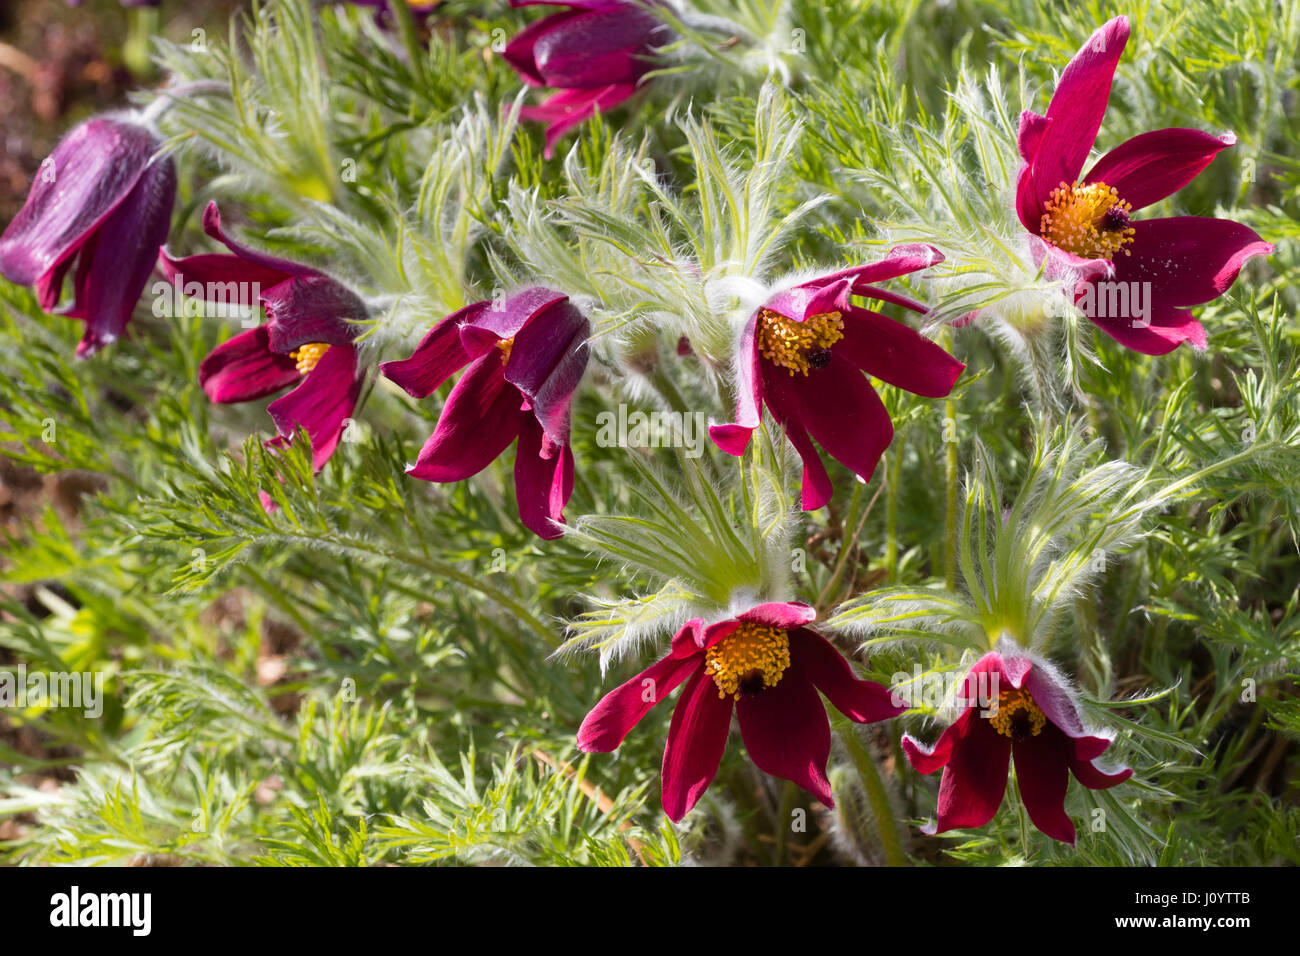 Red Spring flowers of the herbaceous perennial Pasque flower, Pulsatilla vulgaris 'Rubra' - Stock Image